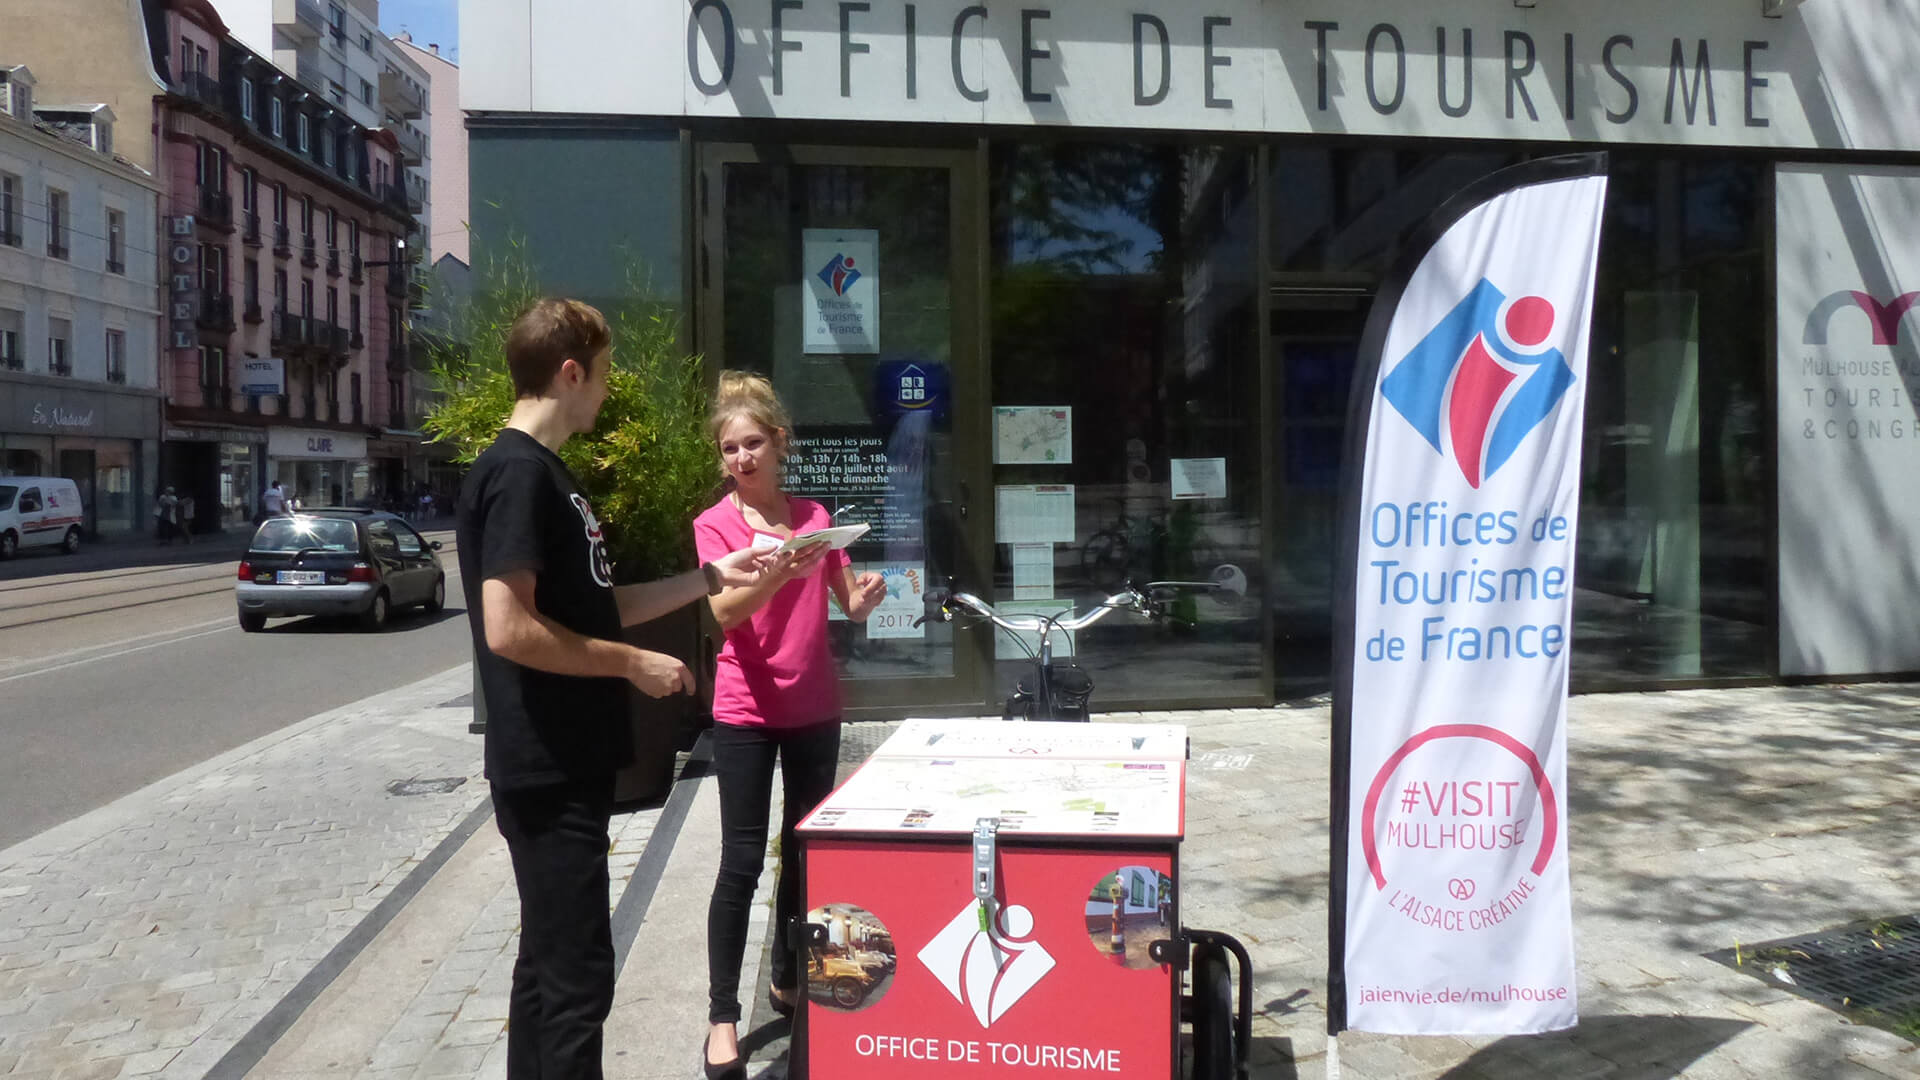 Office de tourisme Mulhouse